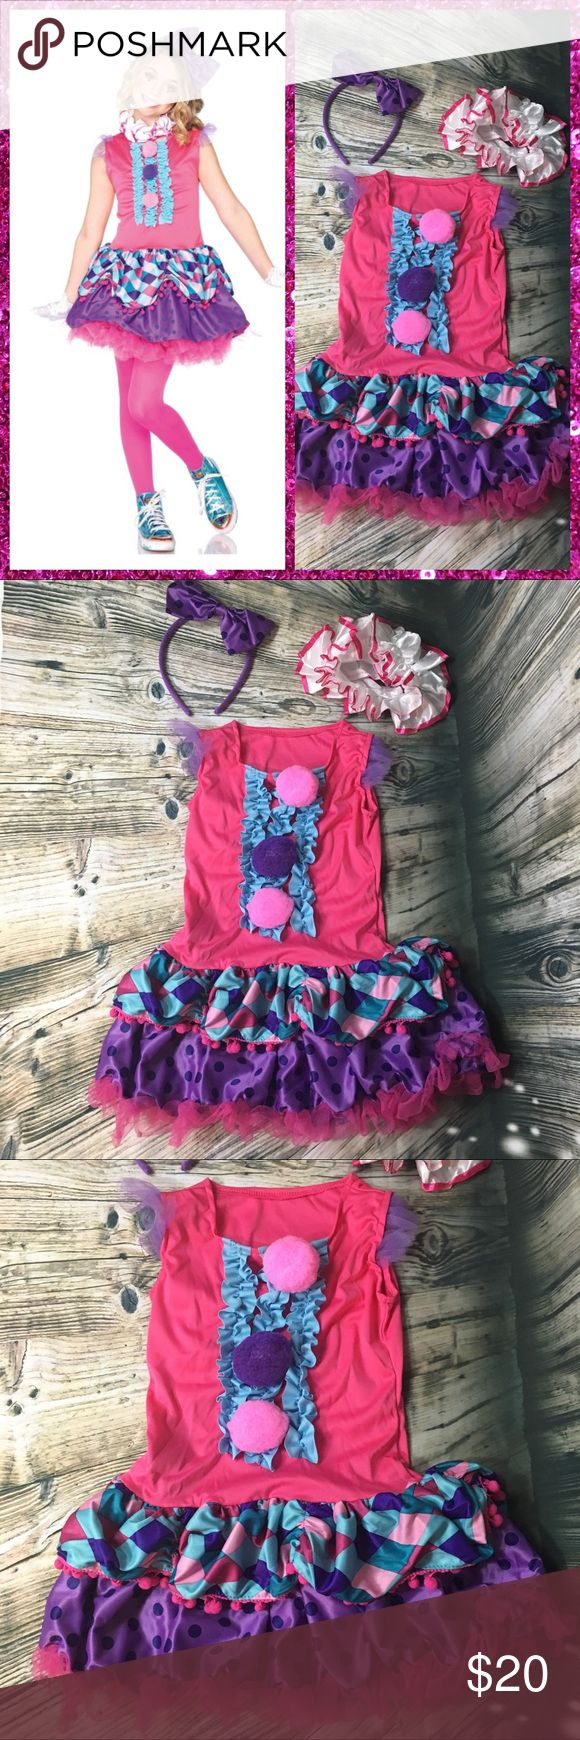 New!  Leg Avenue Clown Cutie Costume Girl's 3T/4T Cute!  New!  Leg Avenue Clown Cutie Costume Girl's 3T/4T. Includes: Hot pink Tutu Shift Dress with Pom-Pom and Ruffles, ruffled white collar & bow headband. Please see measurements in pictures. Leg Avenue Costumes Halloween